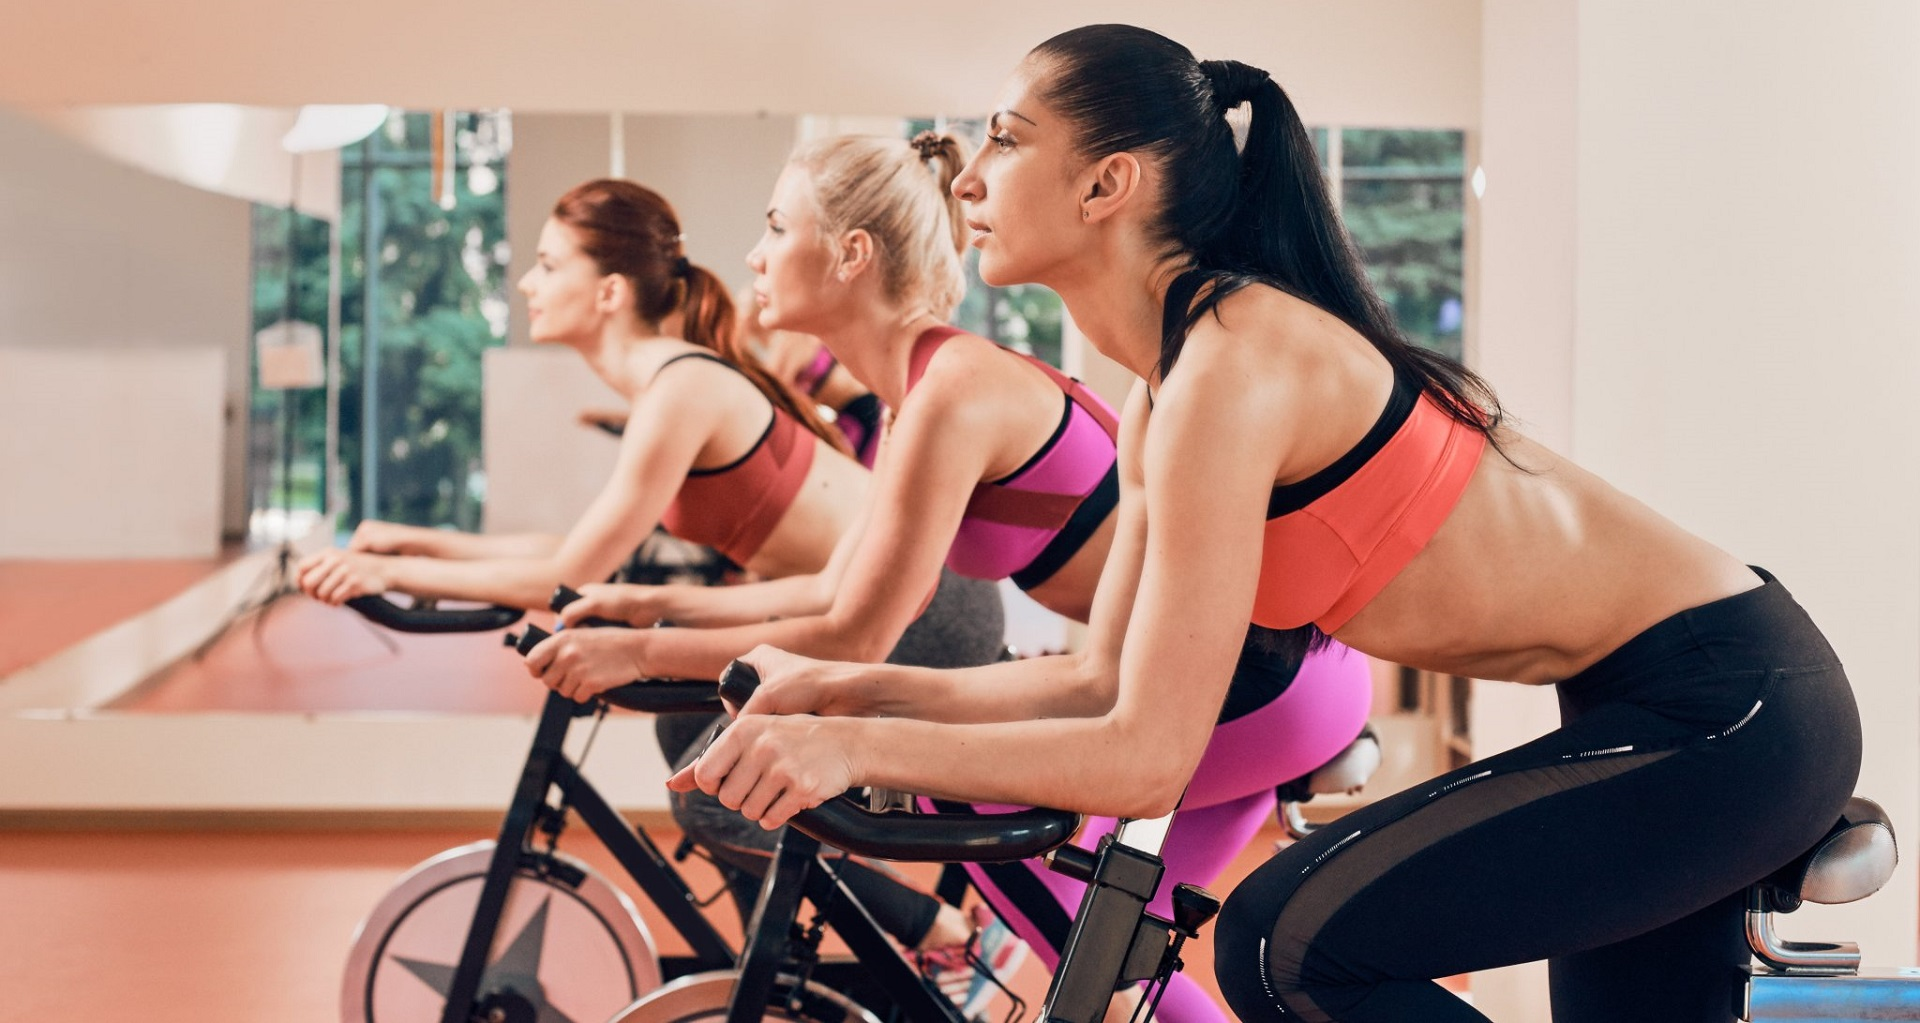 Sports Bra For Spinning Reviewed